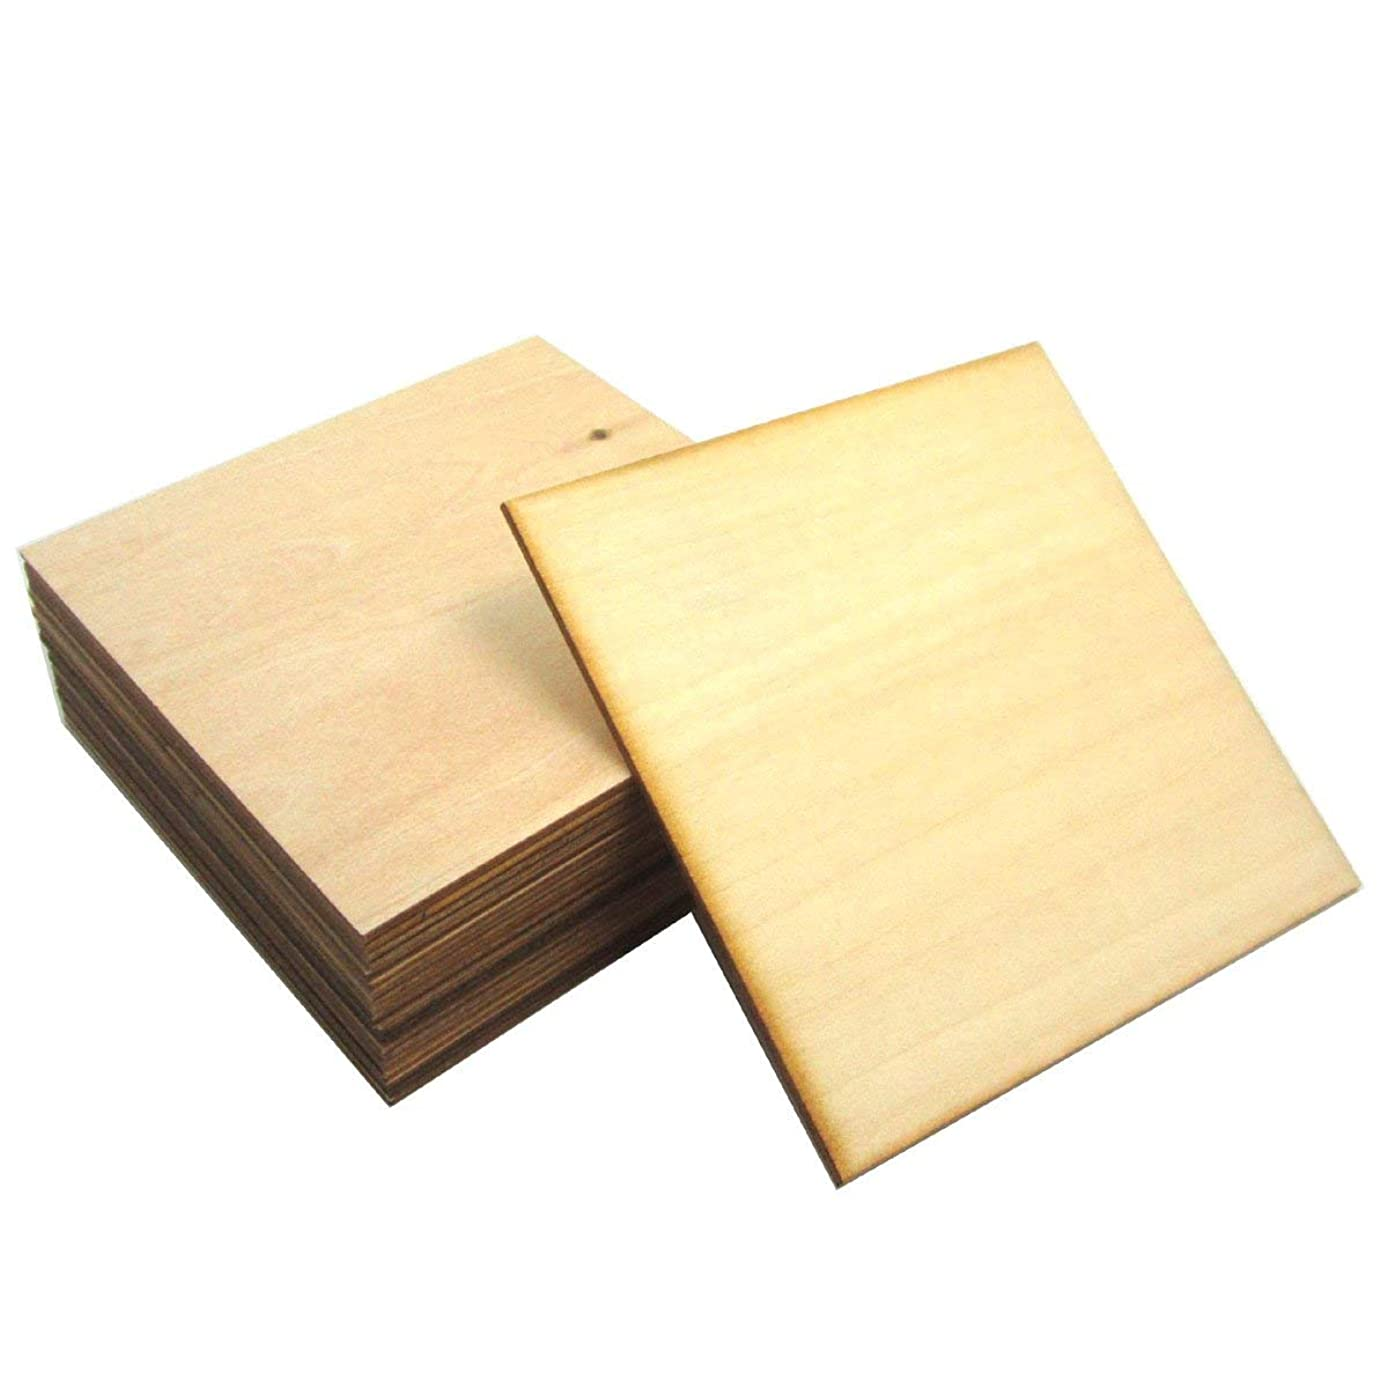 WINGONEER 20pcs 10x10cm Square plywood Wooden Blank Wood Slices DIY Crafts Common wood for Creating Jewelry Painted Christmas Tree Decorated craft Projects - Thickness: 1.5mm